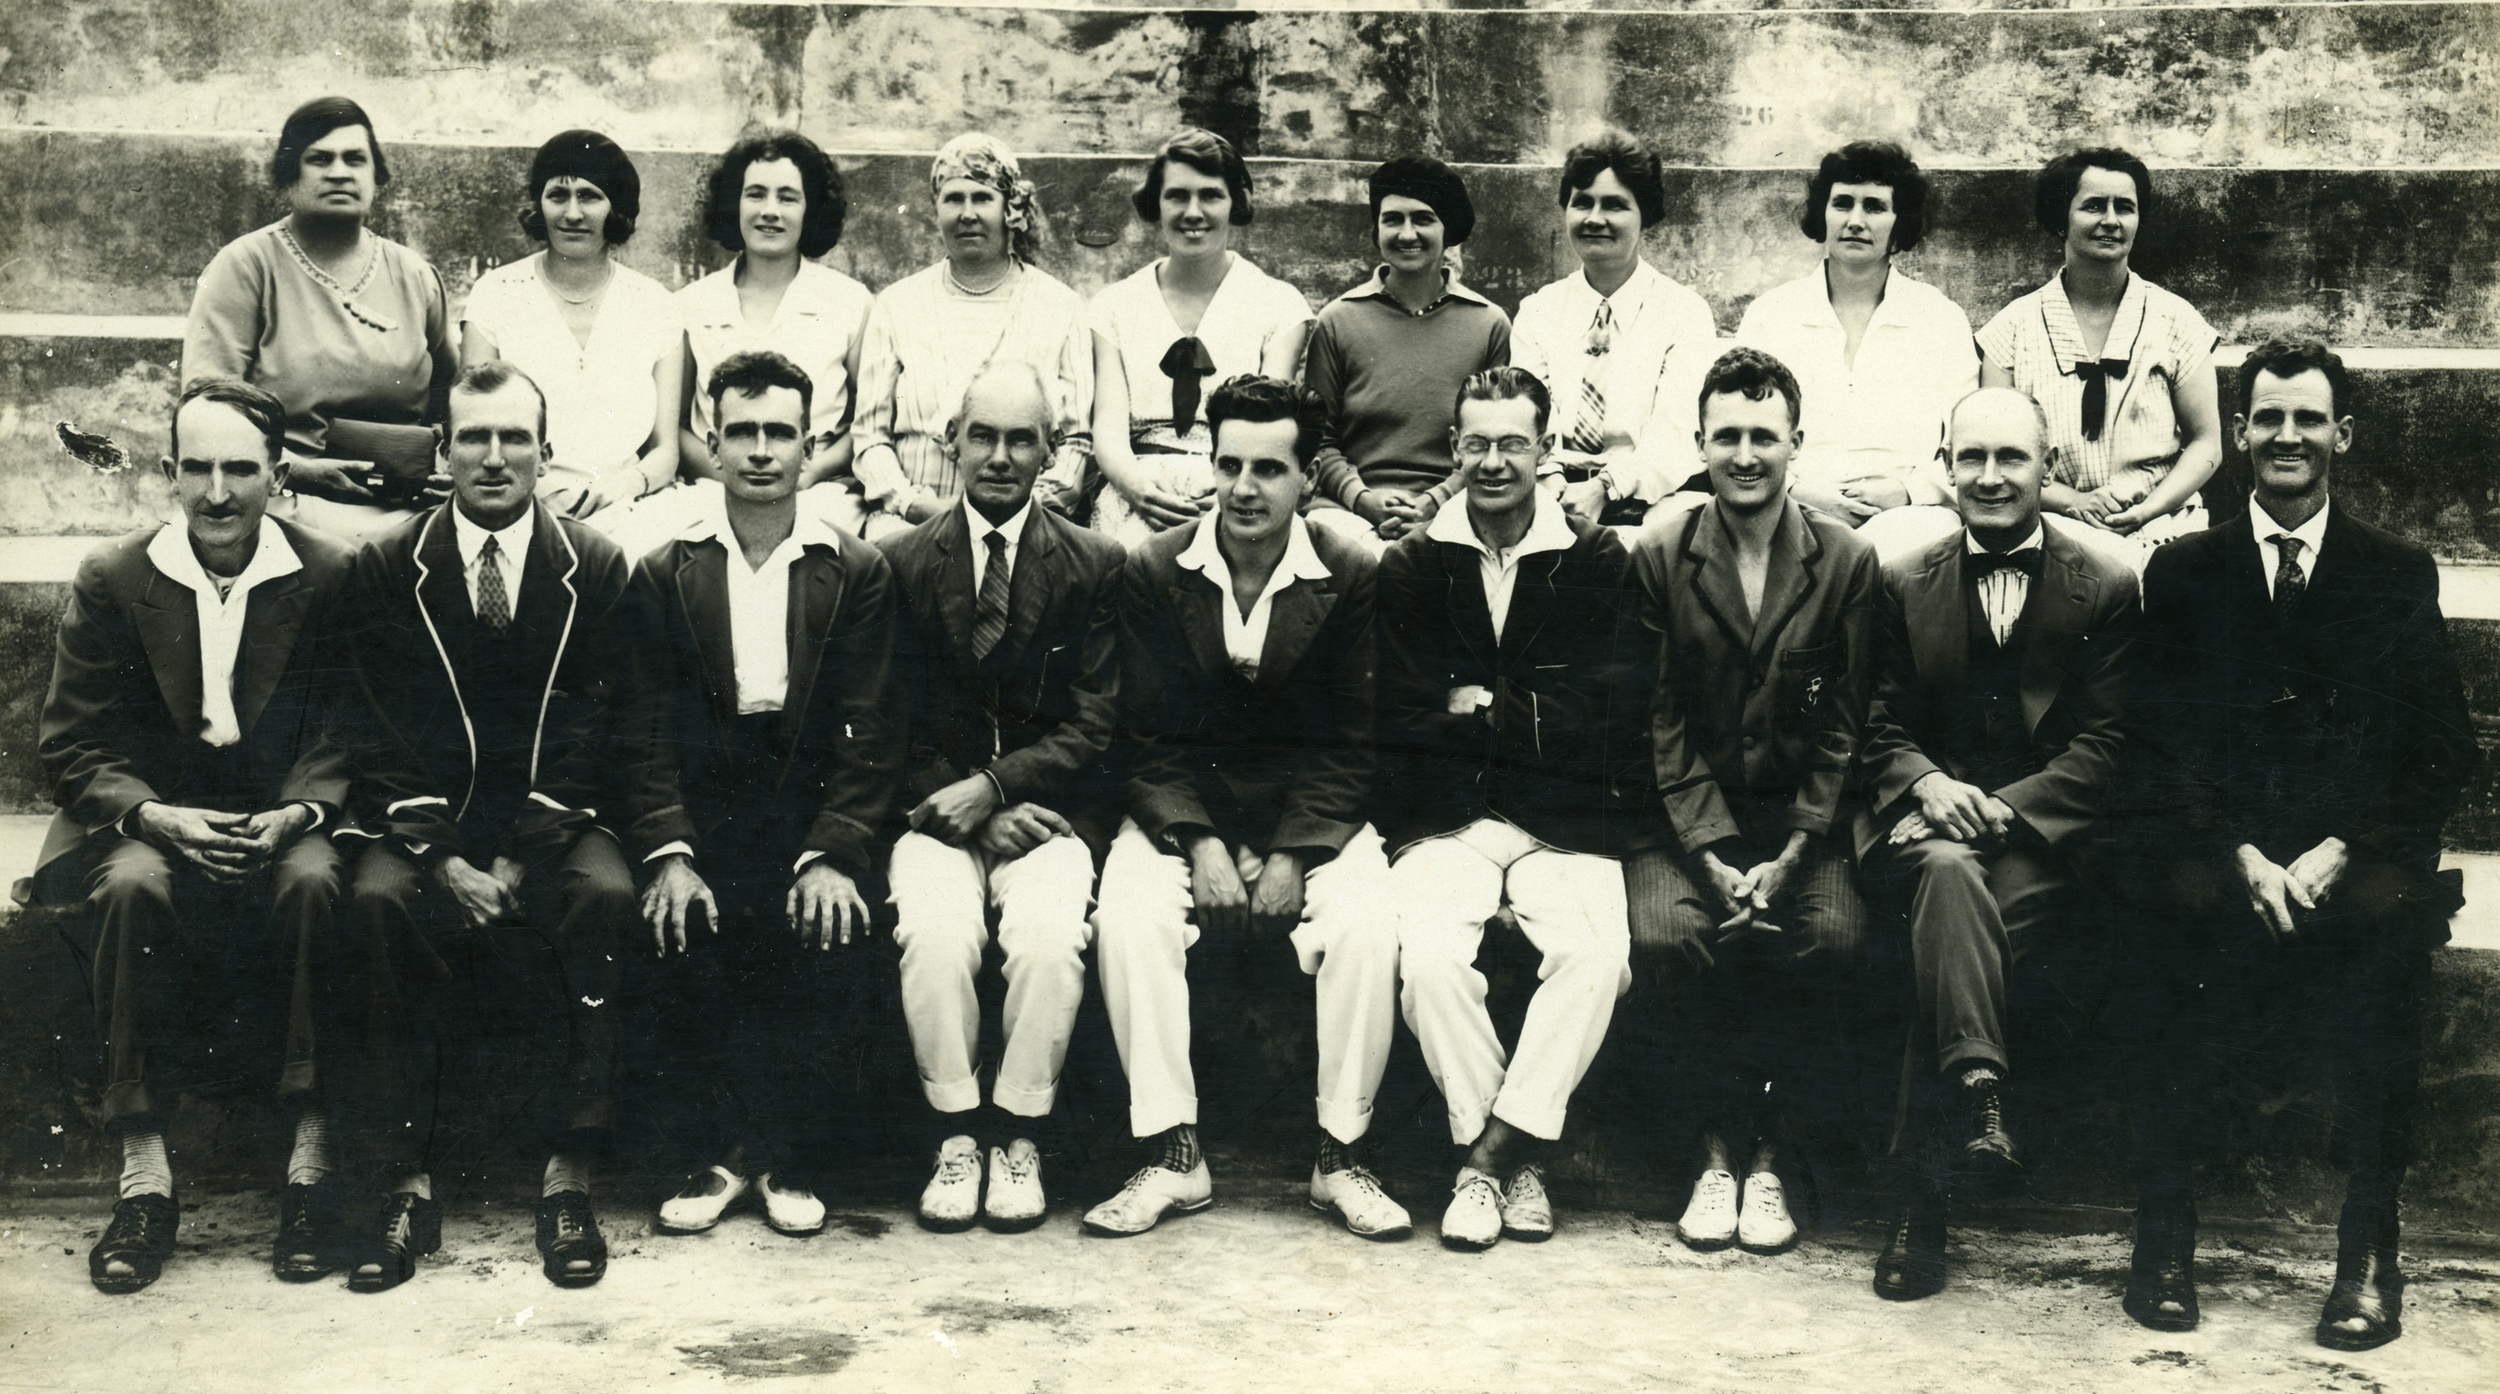 From left to right    Back Row: Dot Loader, Valerie Hole, Gladys Barron, Laura Booth, Marion Hersee, Isabella Winn, Ivy Lansdown, Dora Rider and Ivy Sacker  Front Row:Alfred Power, Norman McNiven, Ernest Quinnell, Fletcher Booth, Herbert Hersee, Stanley Winn, Arthur O'Callaghan, Albert Hole and Frank Sacker